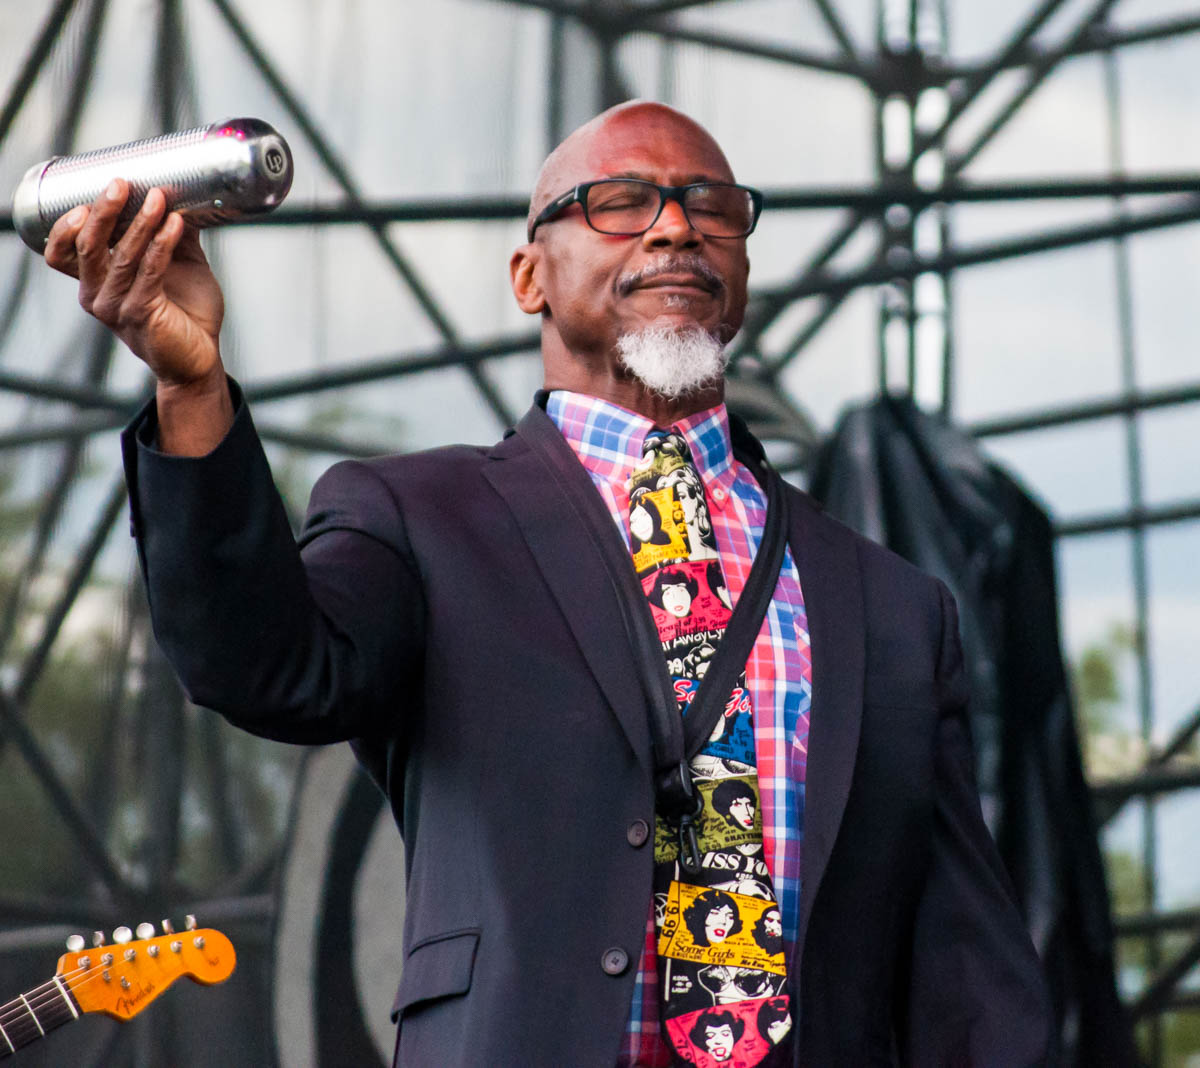 Karl Denson of KDTU ||  The Lawn at White River State Park || Indianapolis, IN || 06/23/19